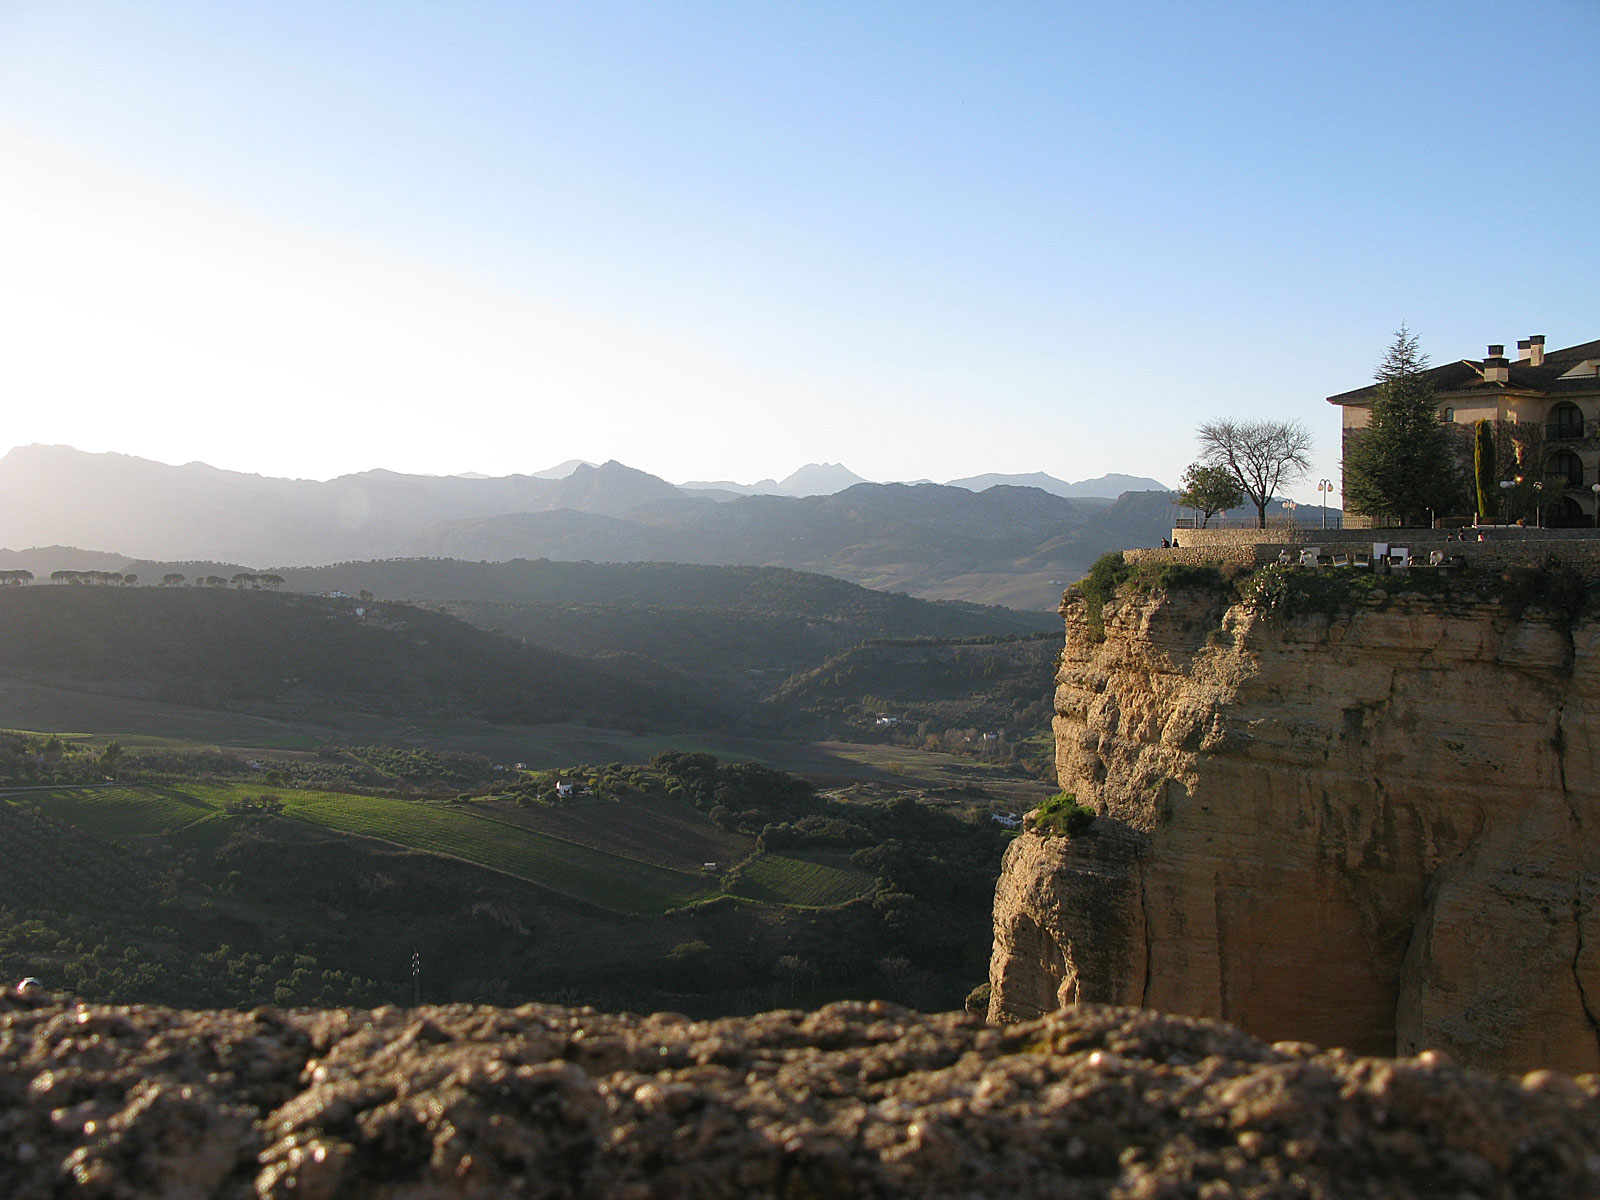 View over the winter scenery of Ronda